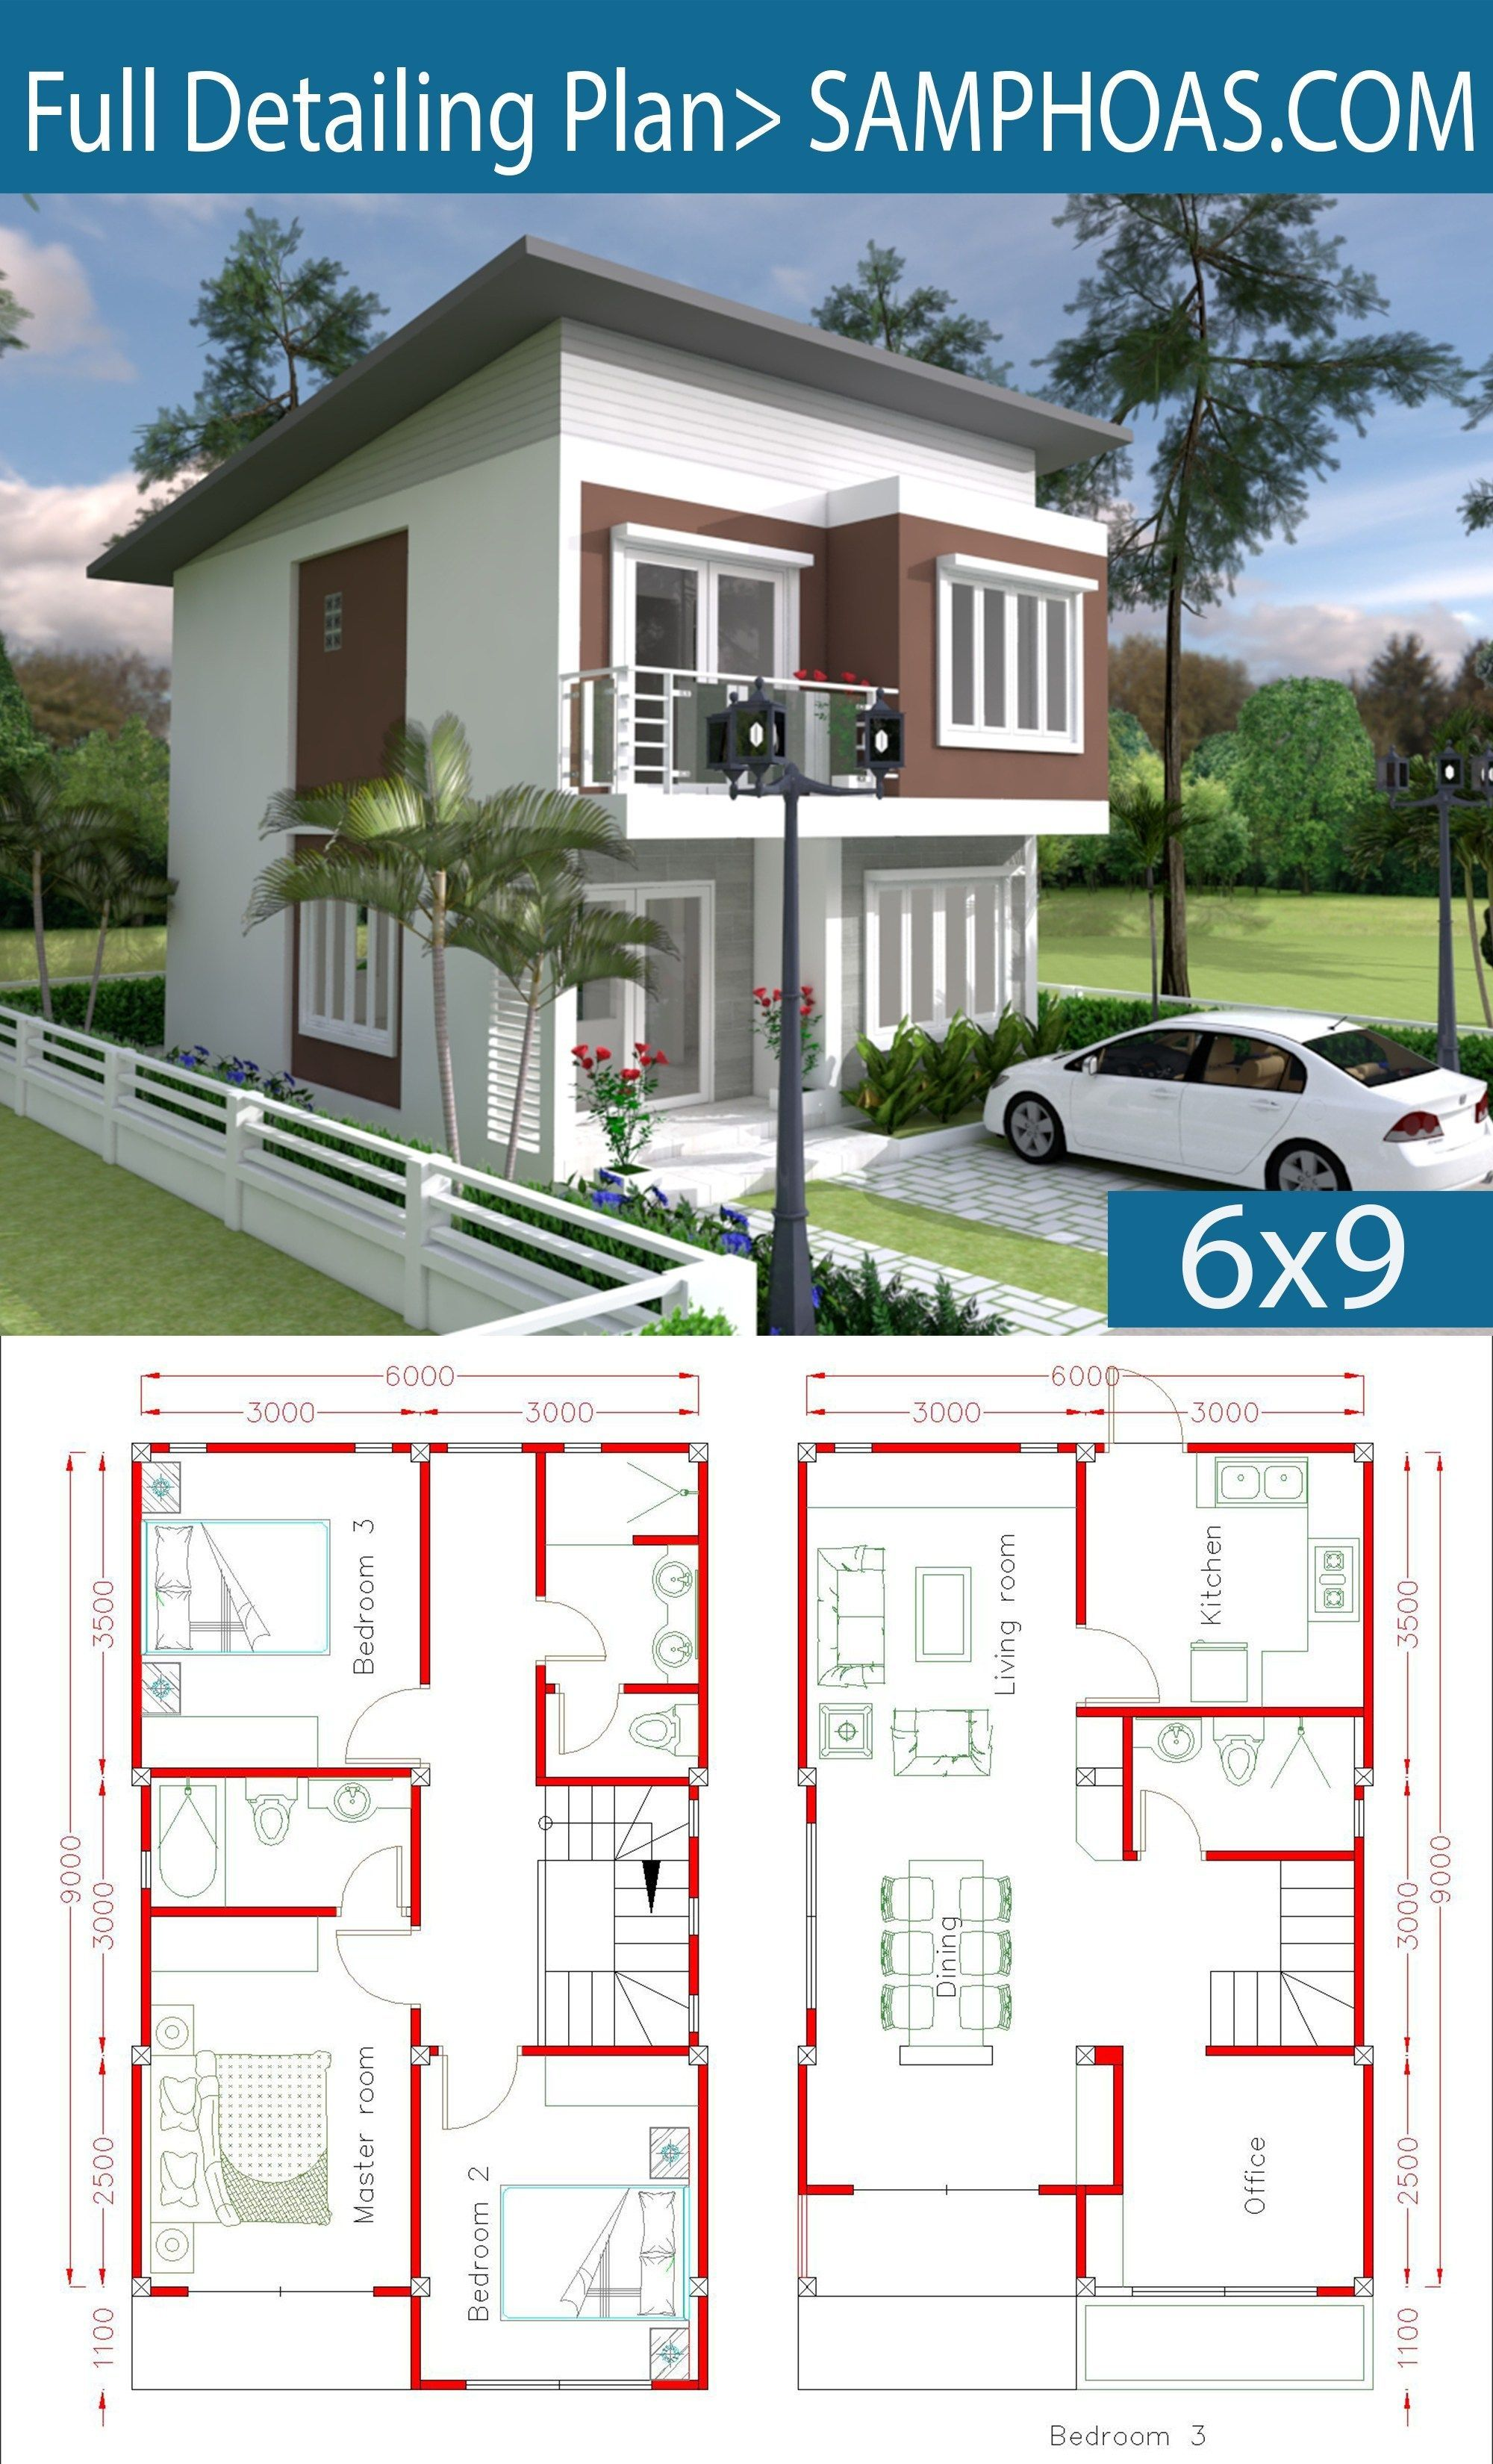 Simple Home Design Plan 6x9m With 3 Bedrooms Simple Home Design Plan 6x9m With 3 Bedrooms Tishia Baker Tishiabaker Simple House Design Simple House House Plans